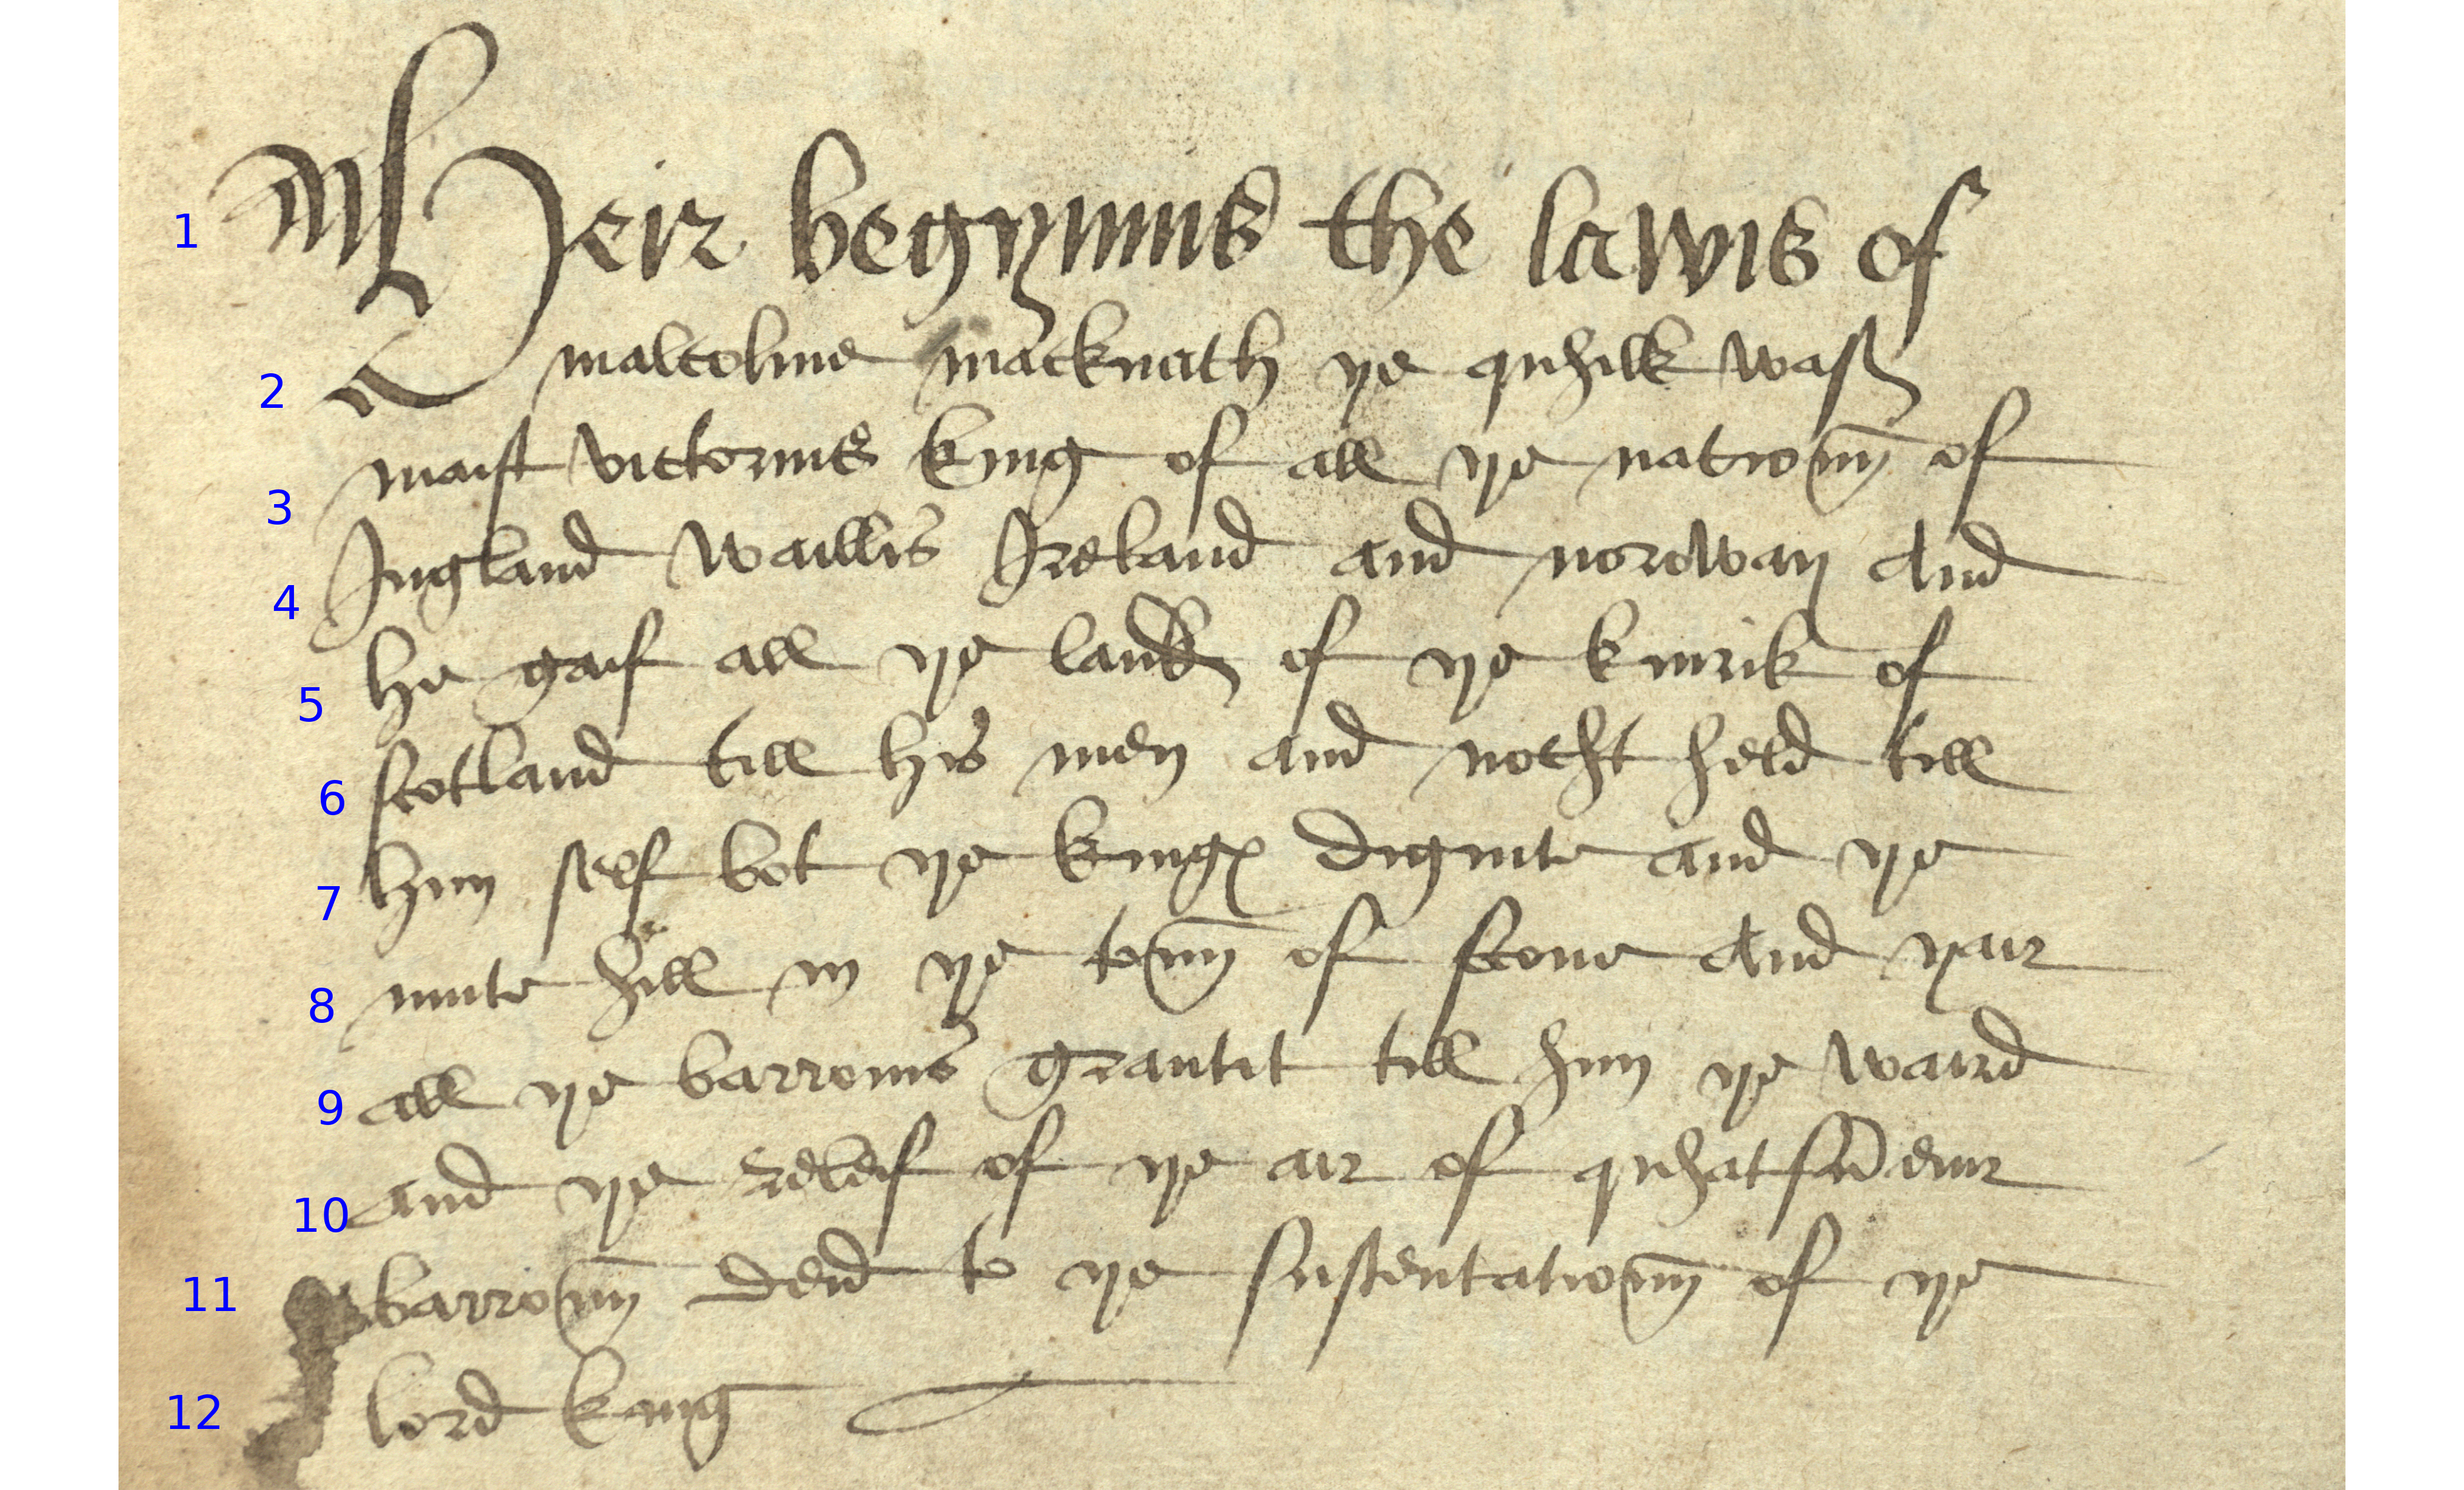 Week 2 16th century secretary hand readme for english transcribe this using the symbol which you can find on the symbols menu in word or simply copy and paste it into your transcription biocorpaavc Gallery